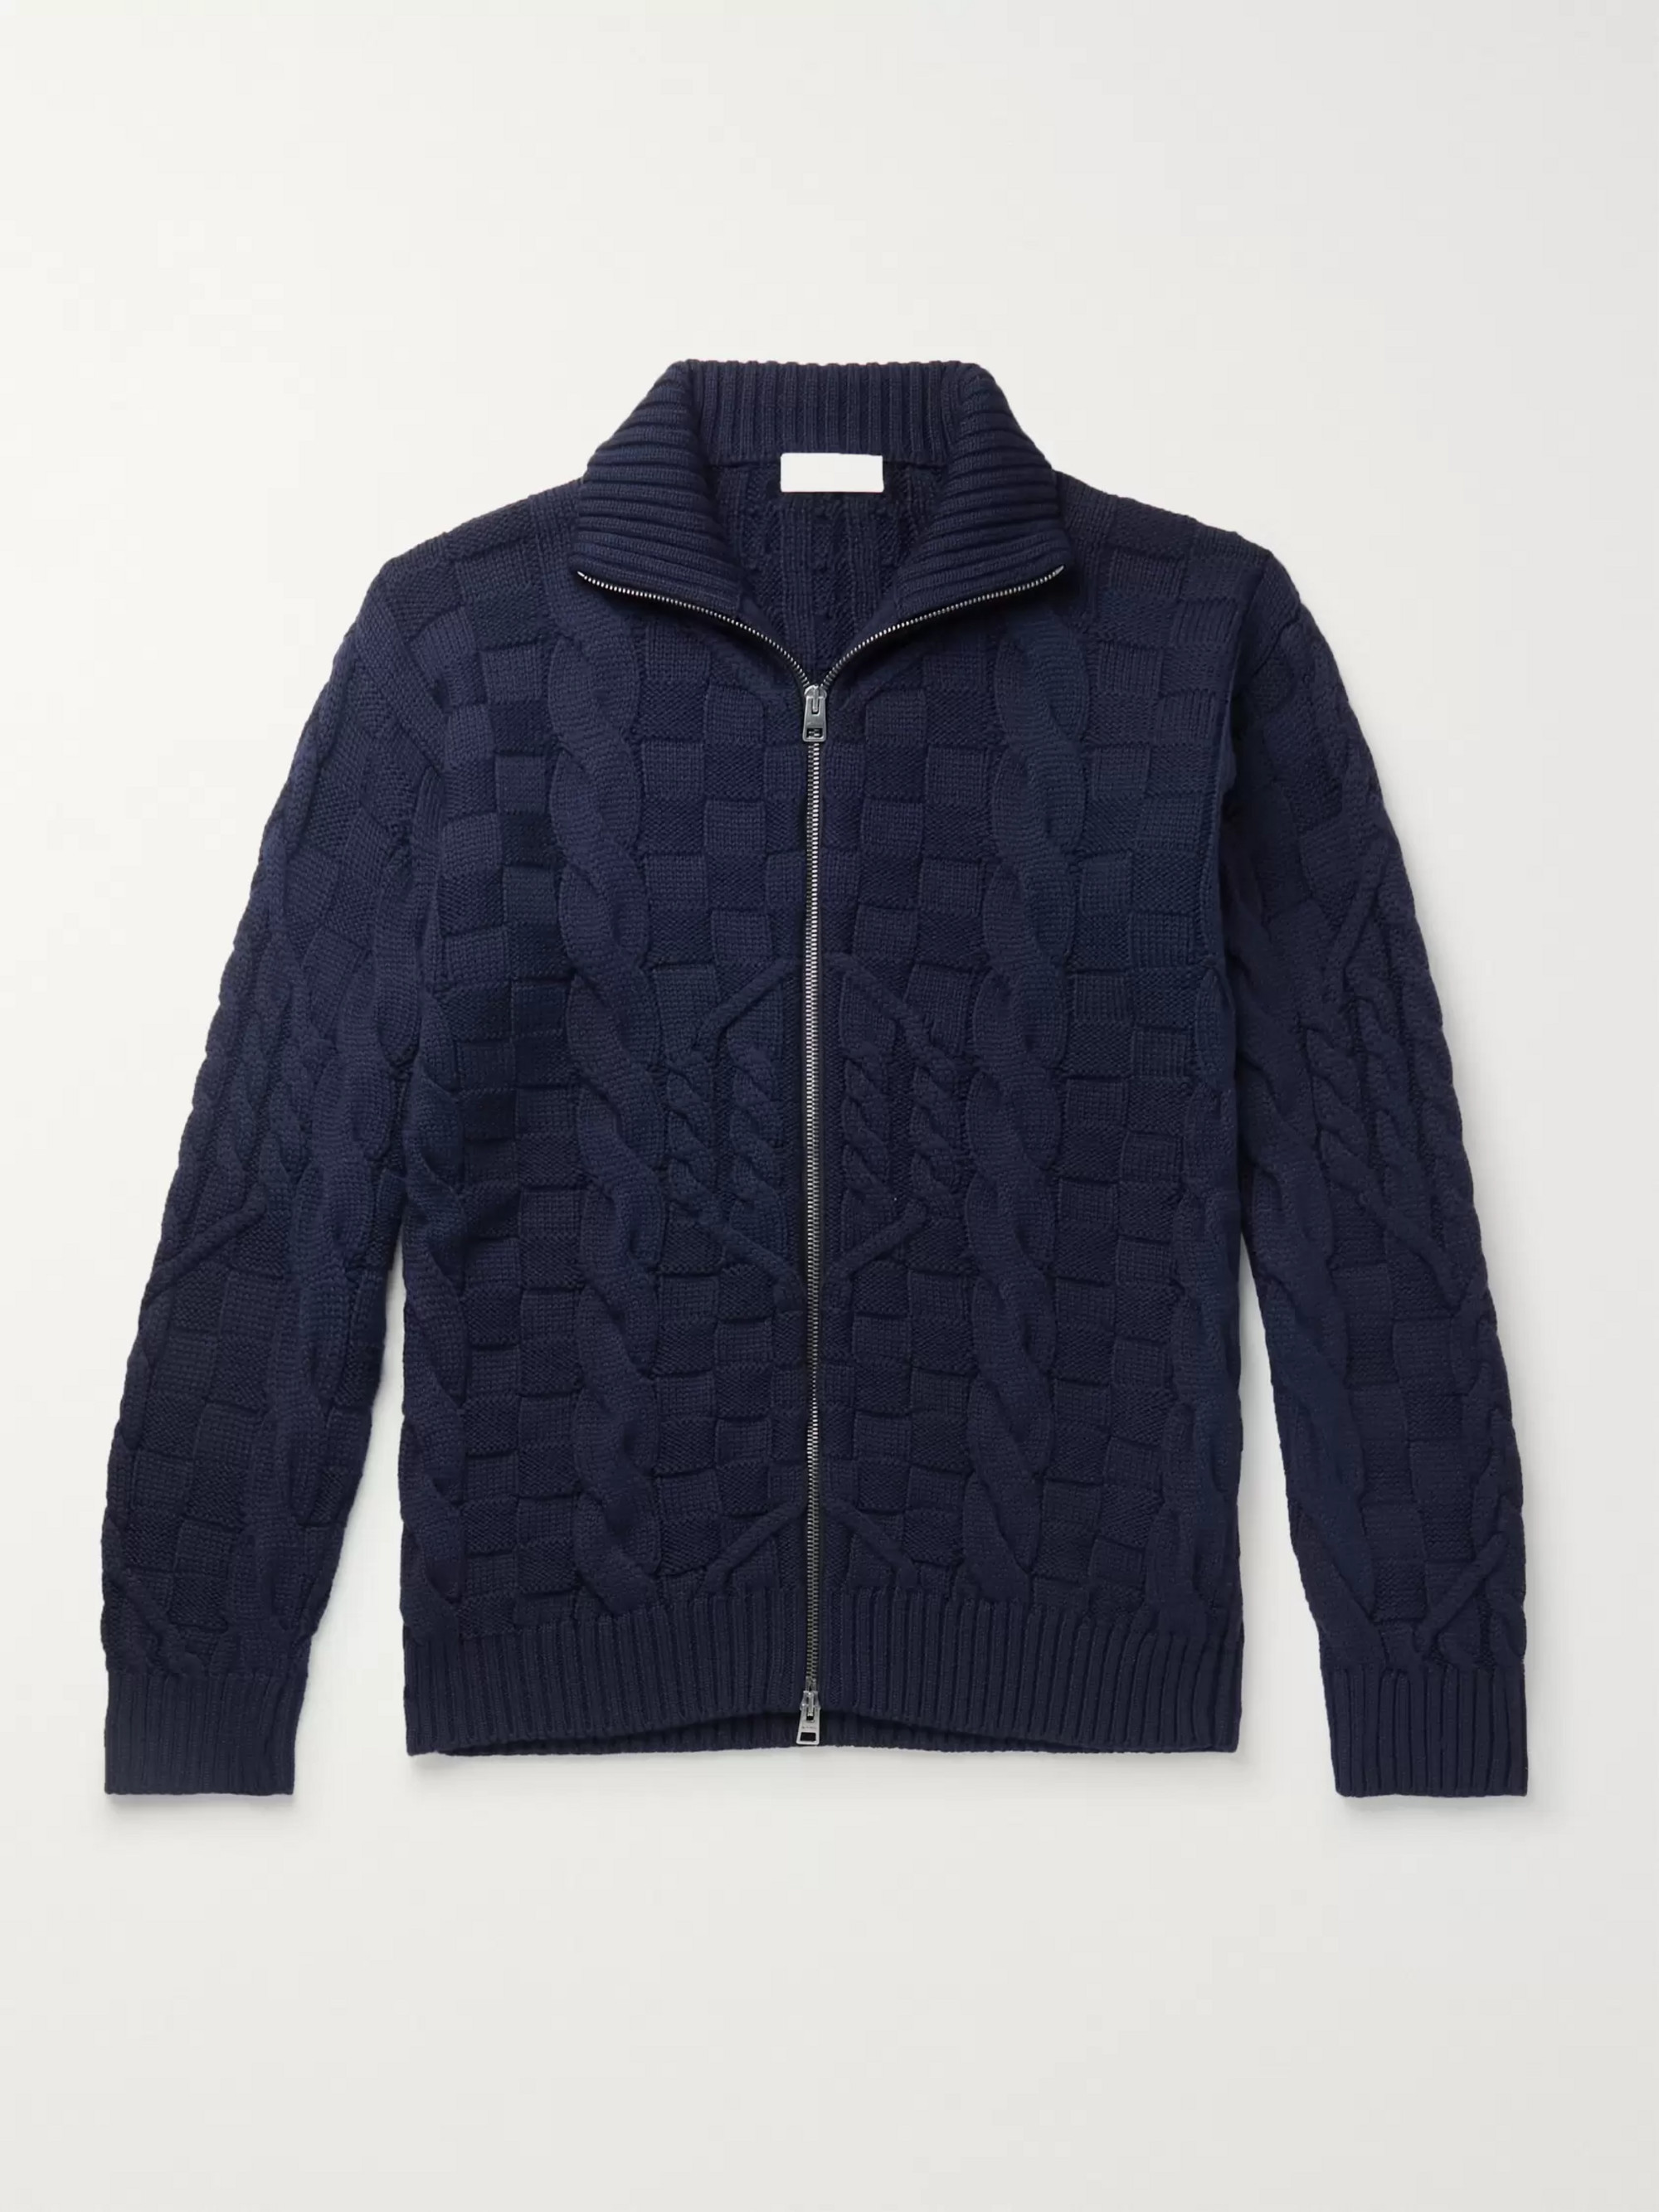 Etro Slim-Fit Cable-Knit Wool Zip-Up Cardigan